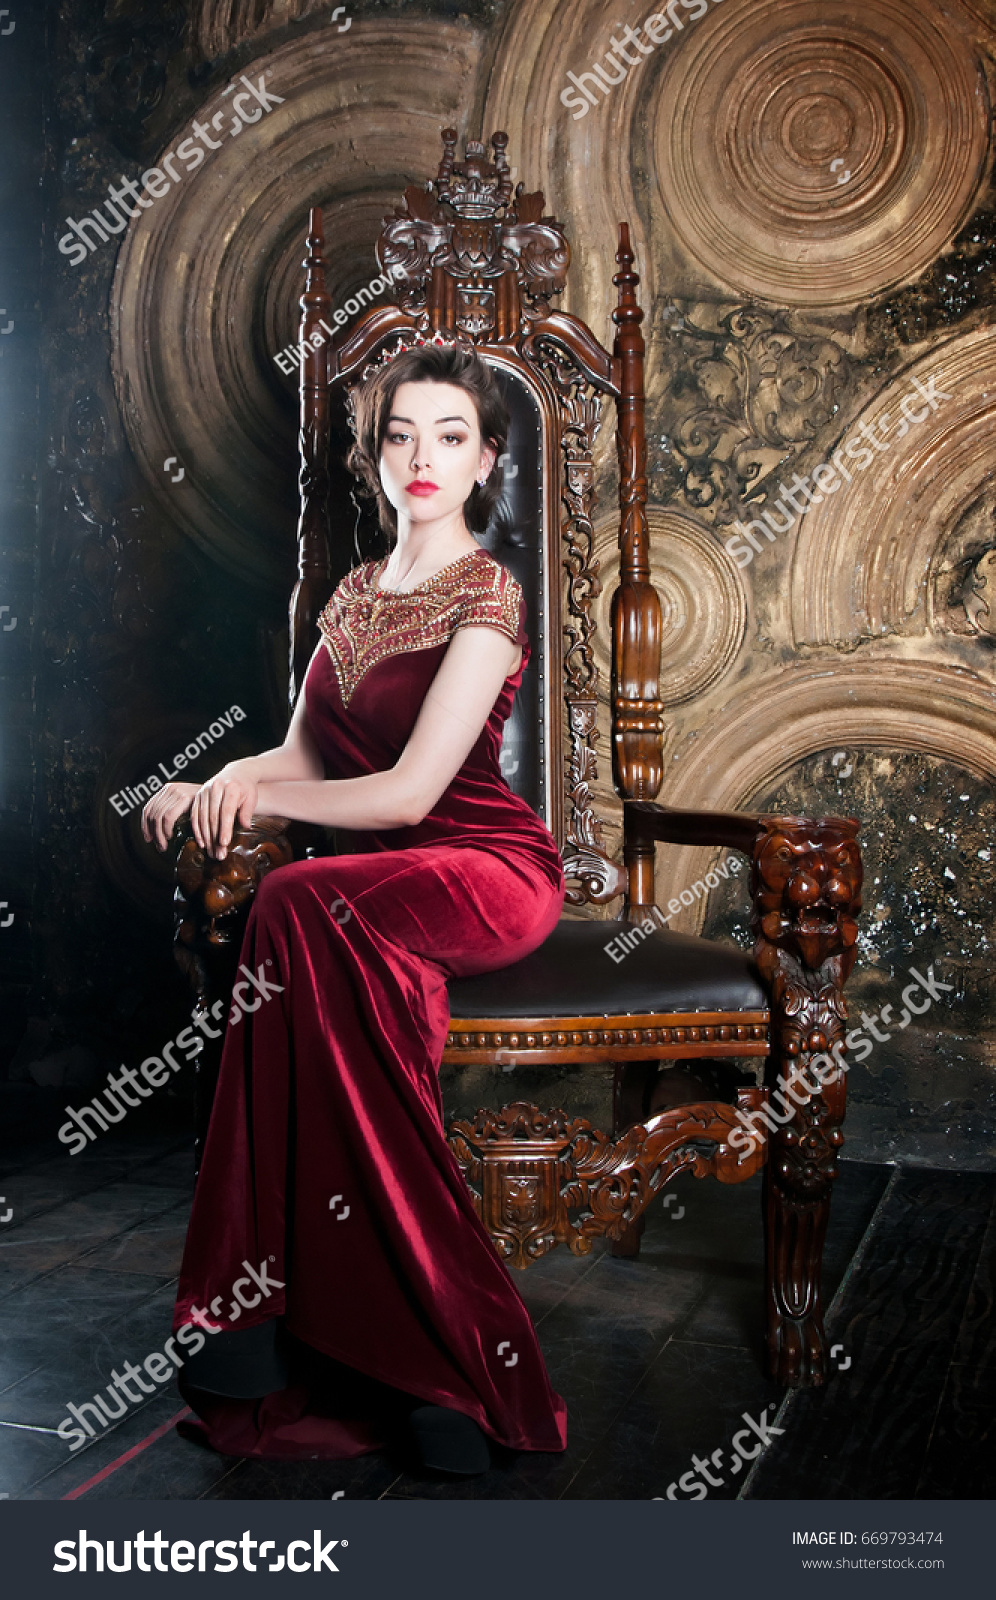 Queen Red Dress Sitting On Throne Stock Photo Edit Now 669793474